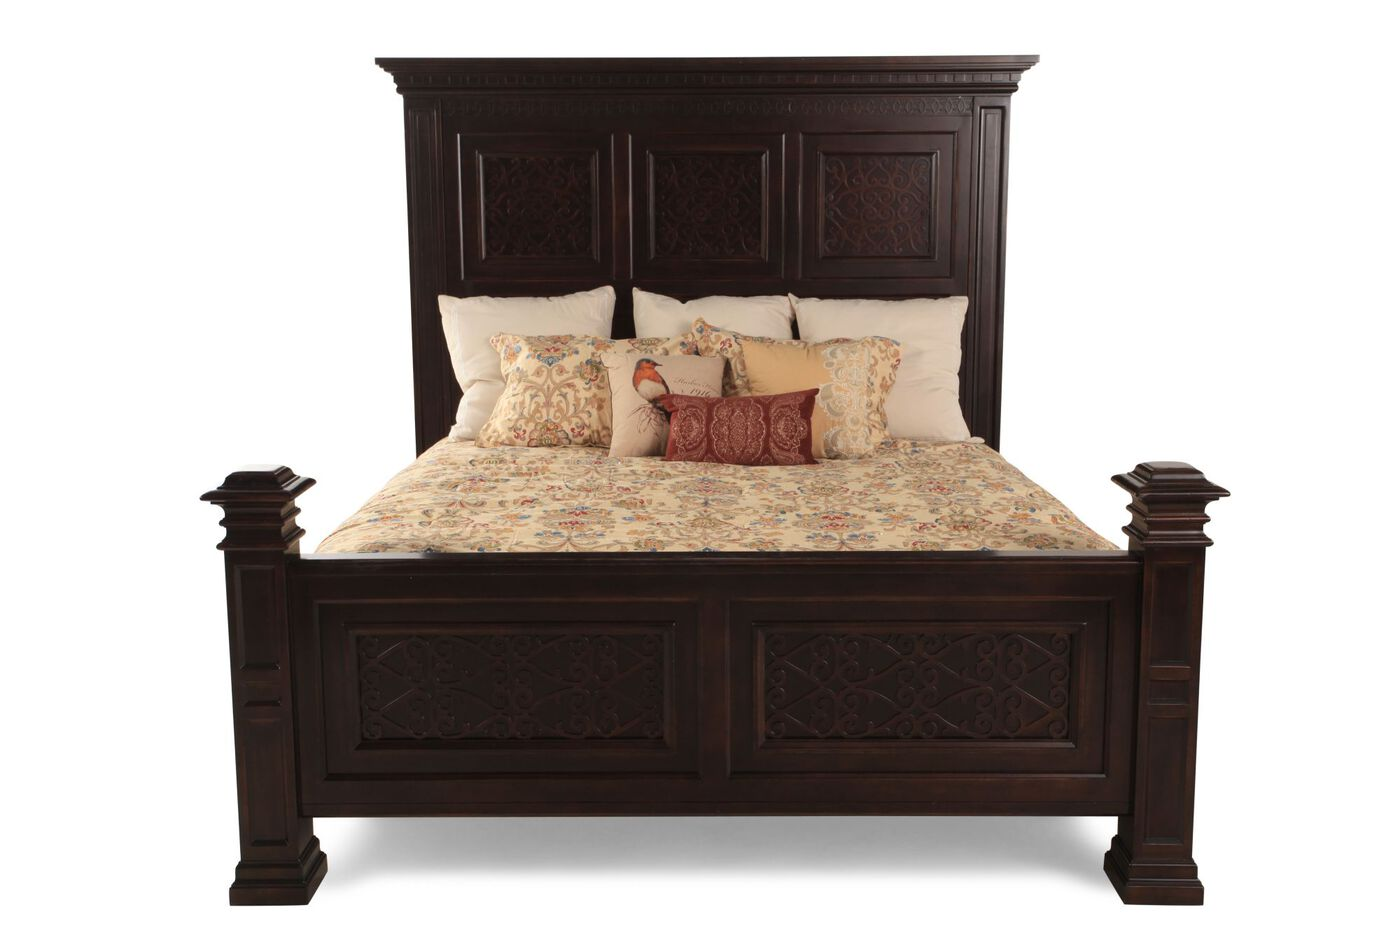 Bernhardt pacific canyon panel bed mathis brothers furniture for Bernhardt furniture